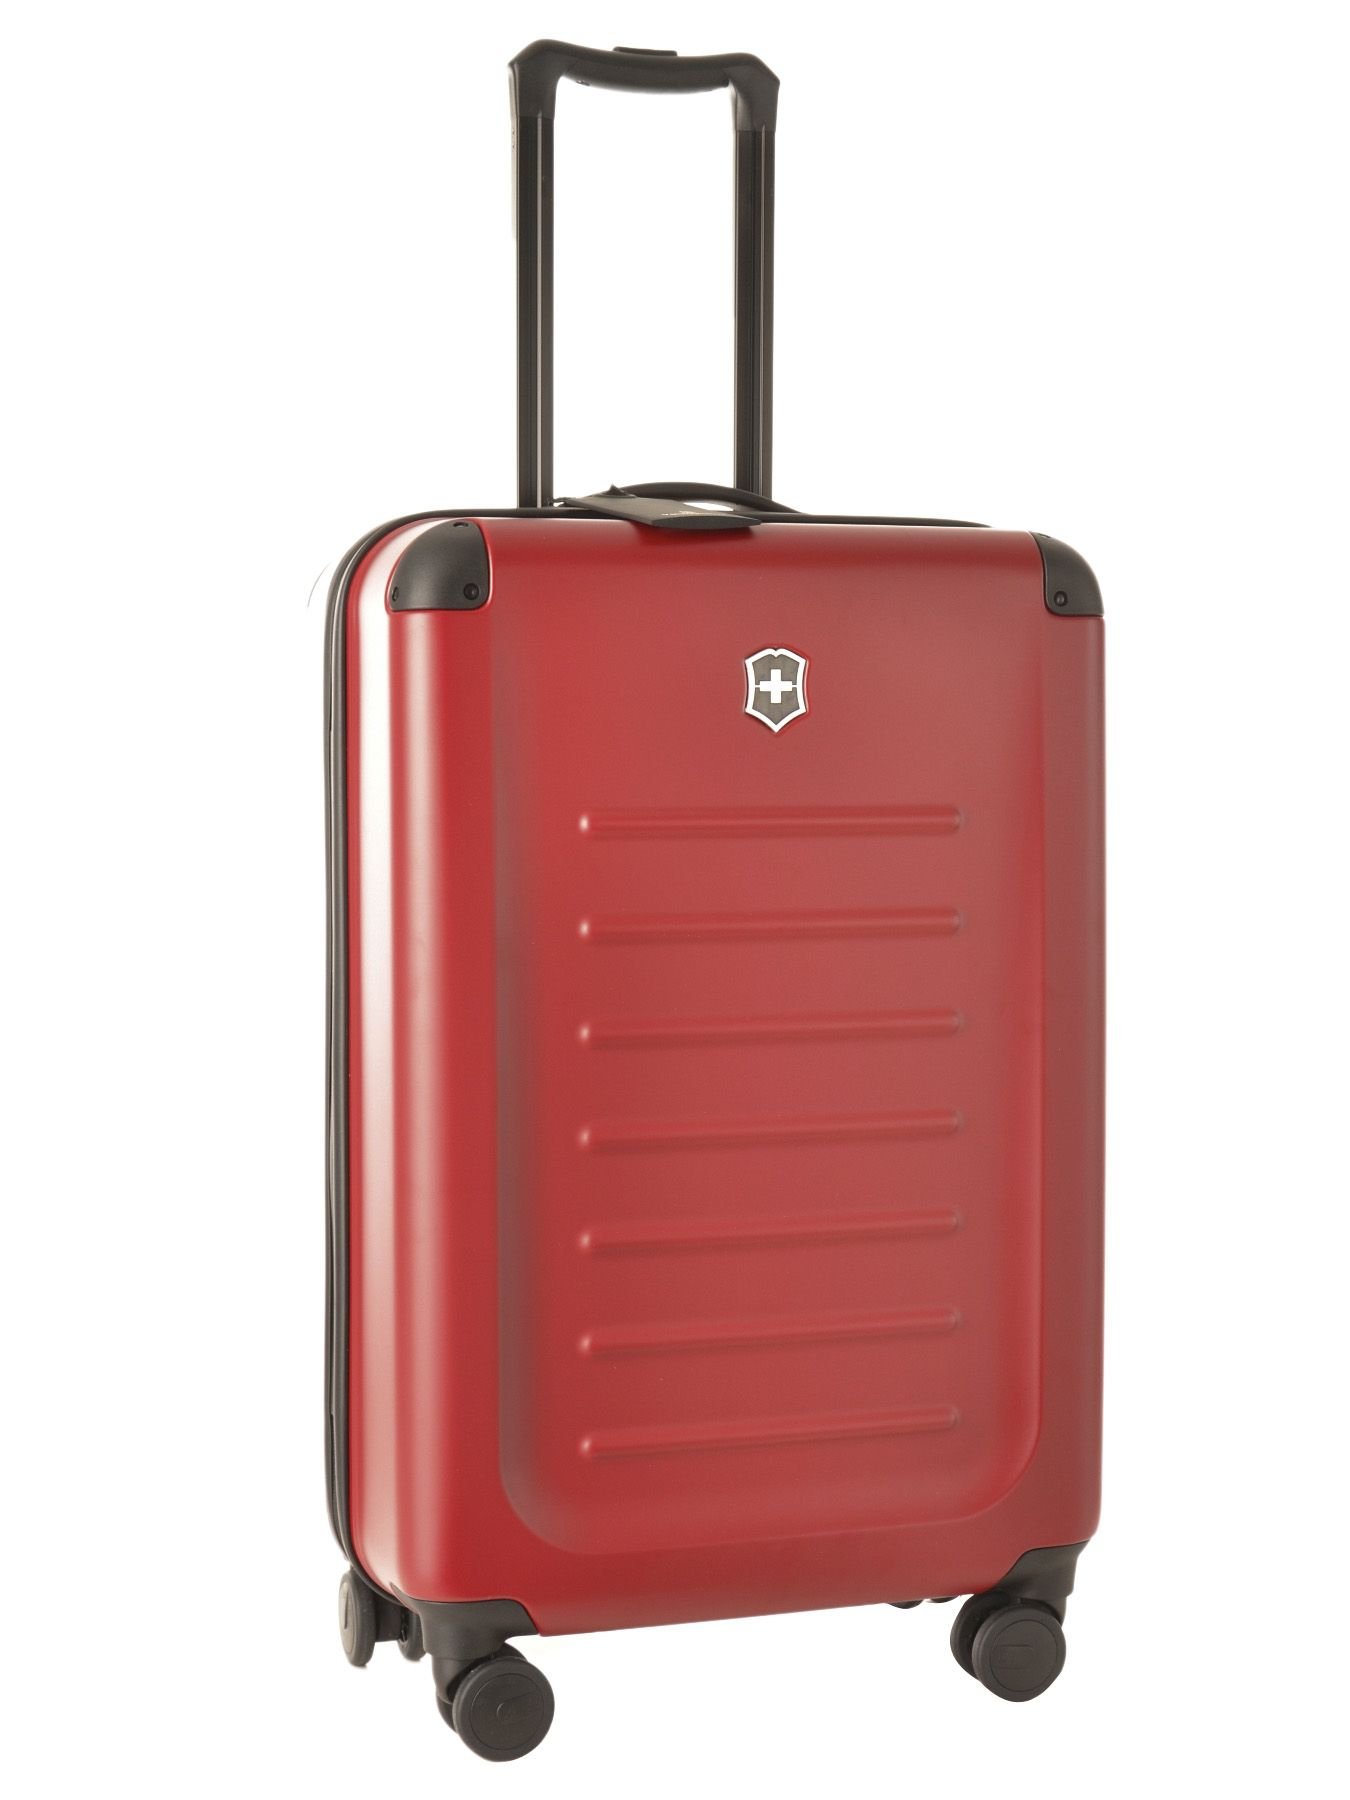 Valise rigide Victorinox Spectra 2.0 - 82 cm Rouge m9Gs7Ty